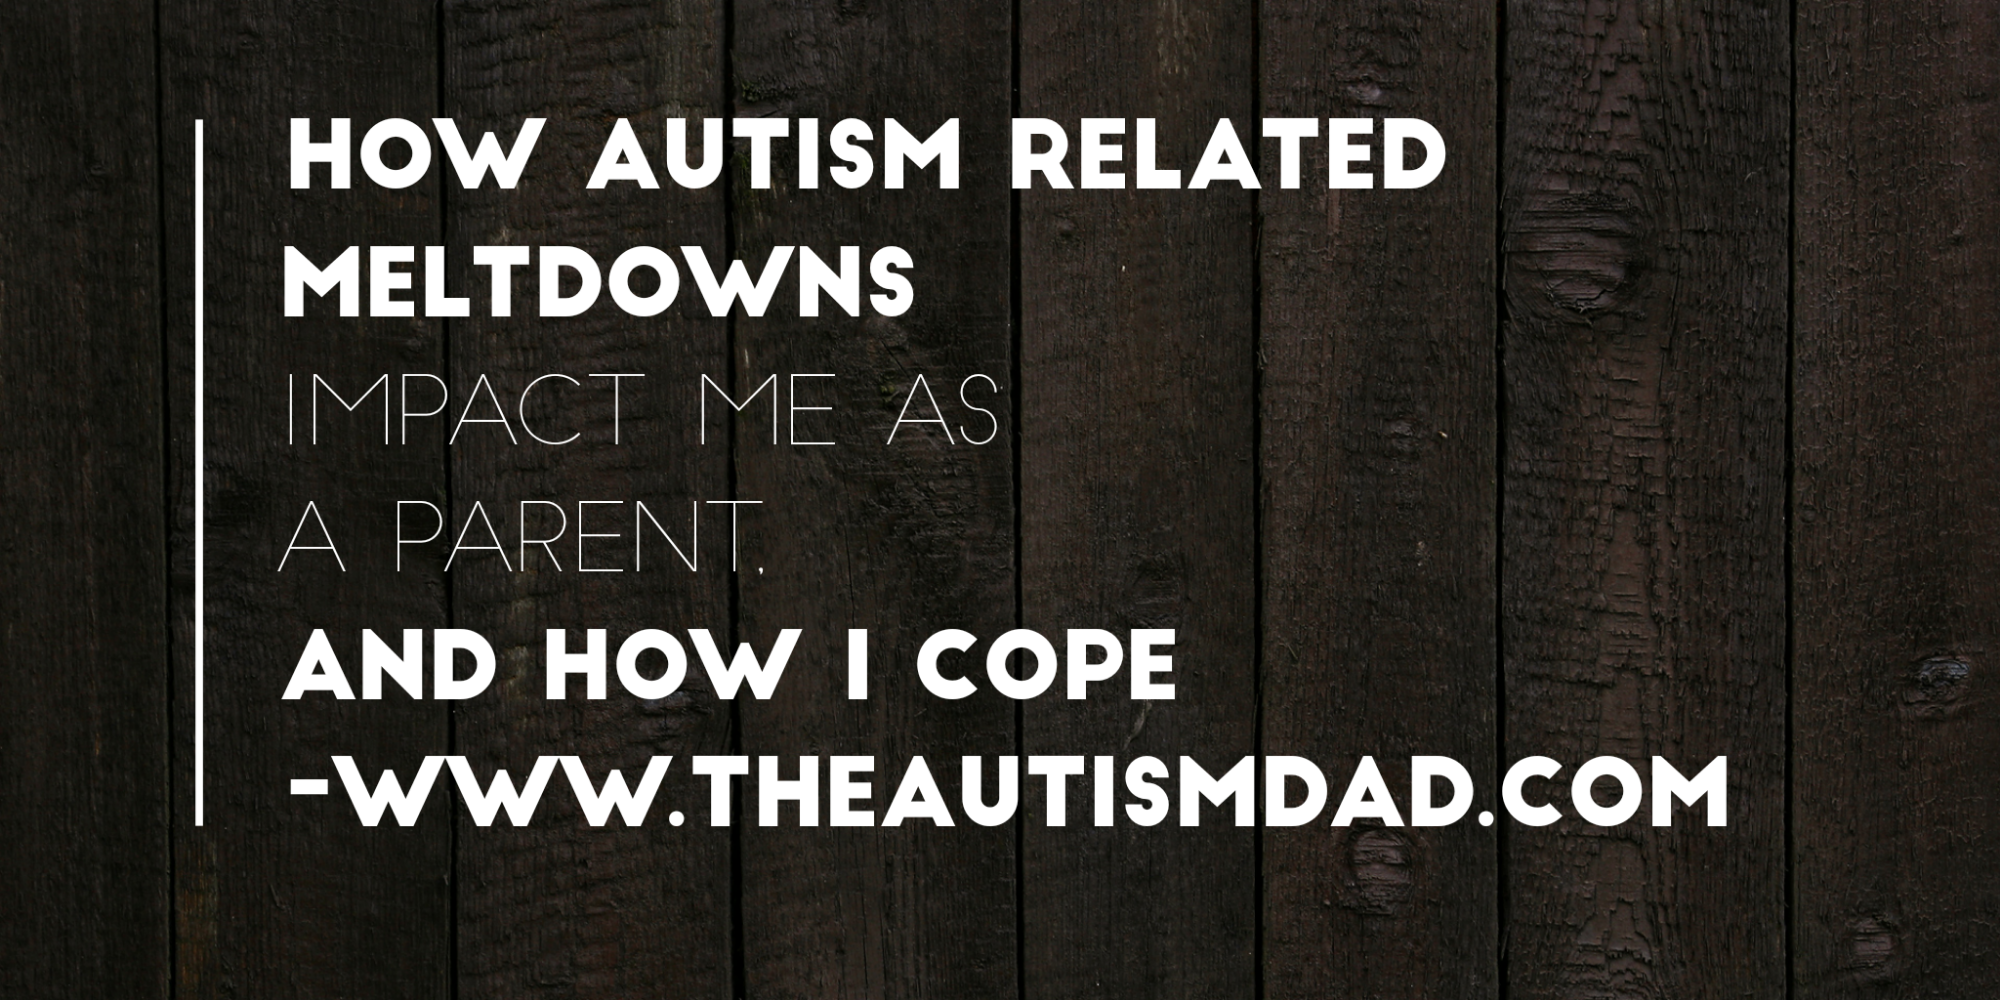 How Autism related meltdowns impact me as a parent, and how I cope